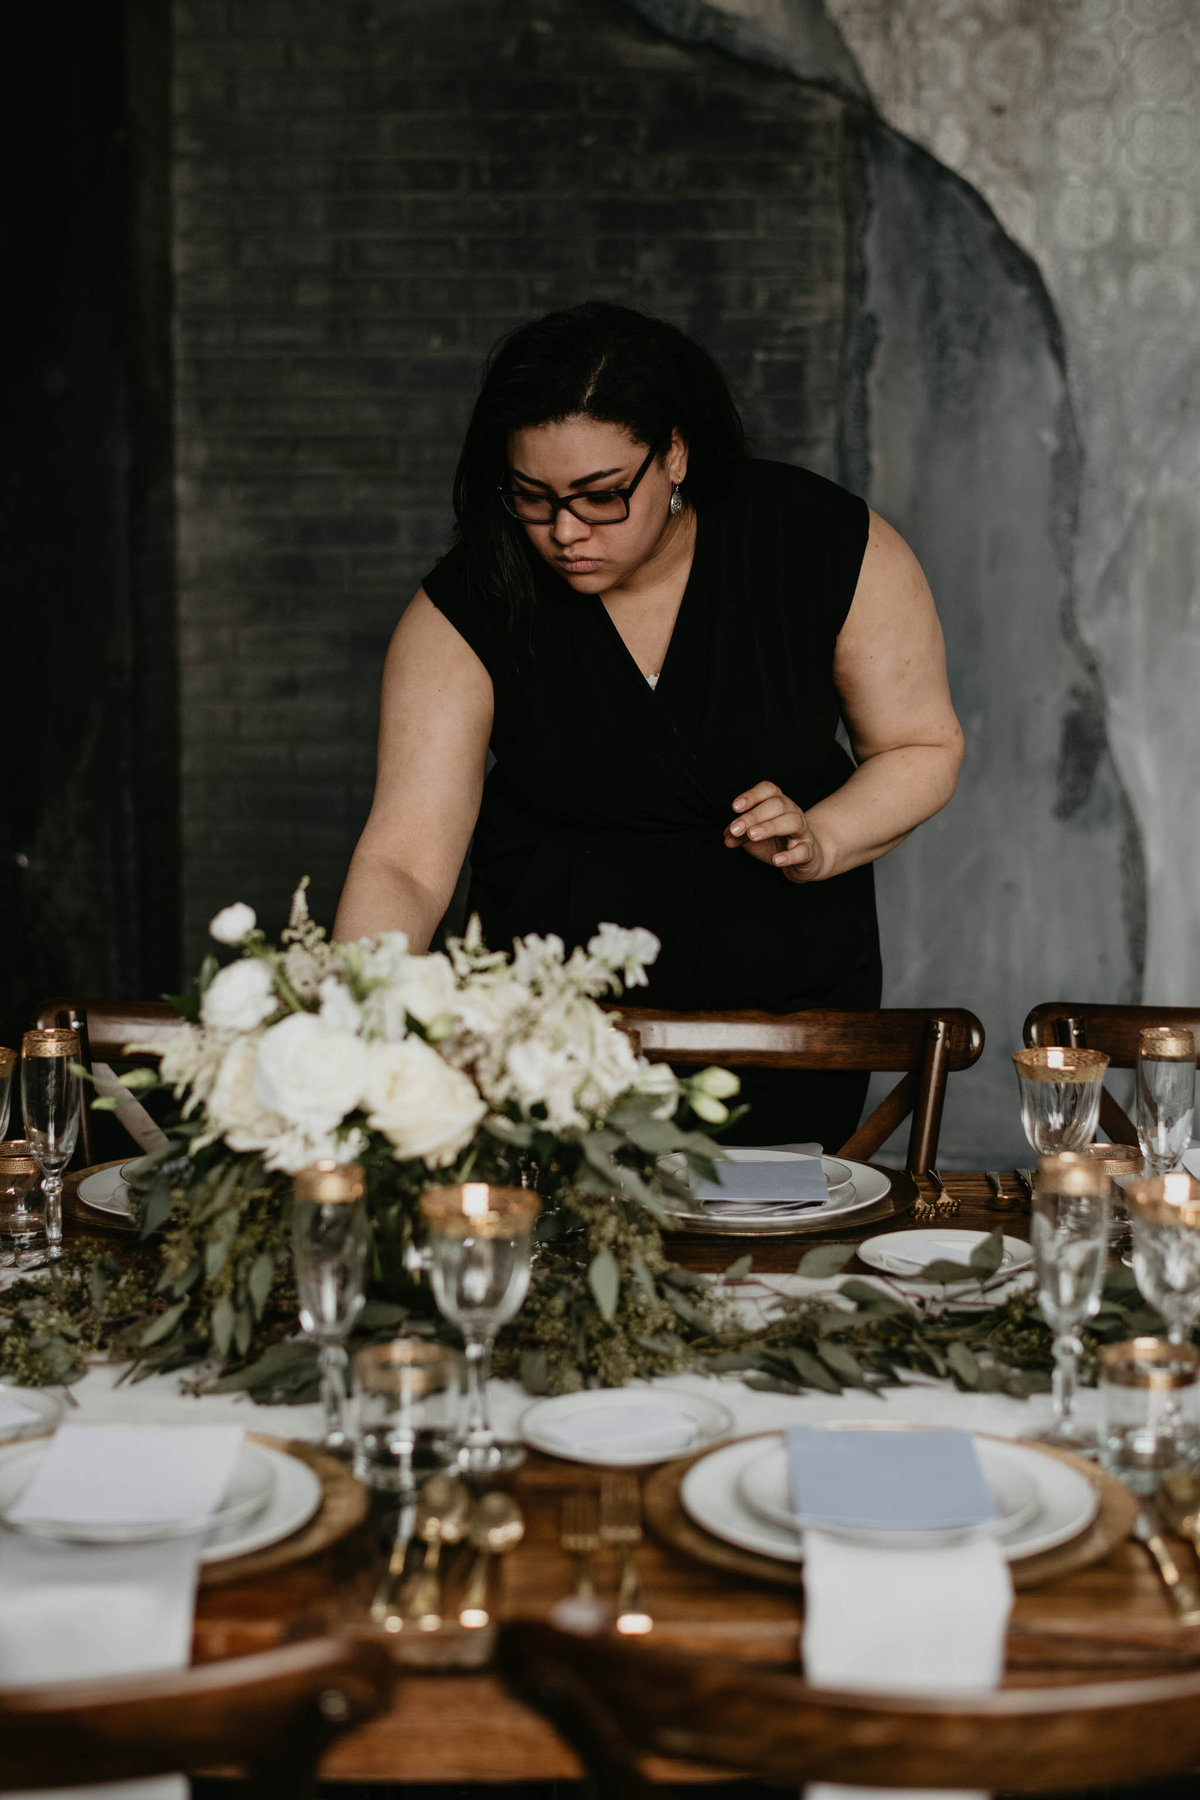 wedding planner sets elaborate table with gold plates, and harvest table